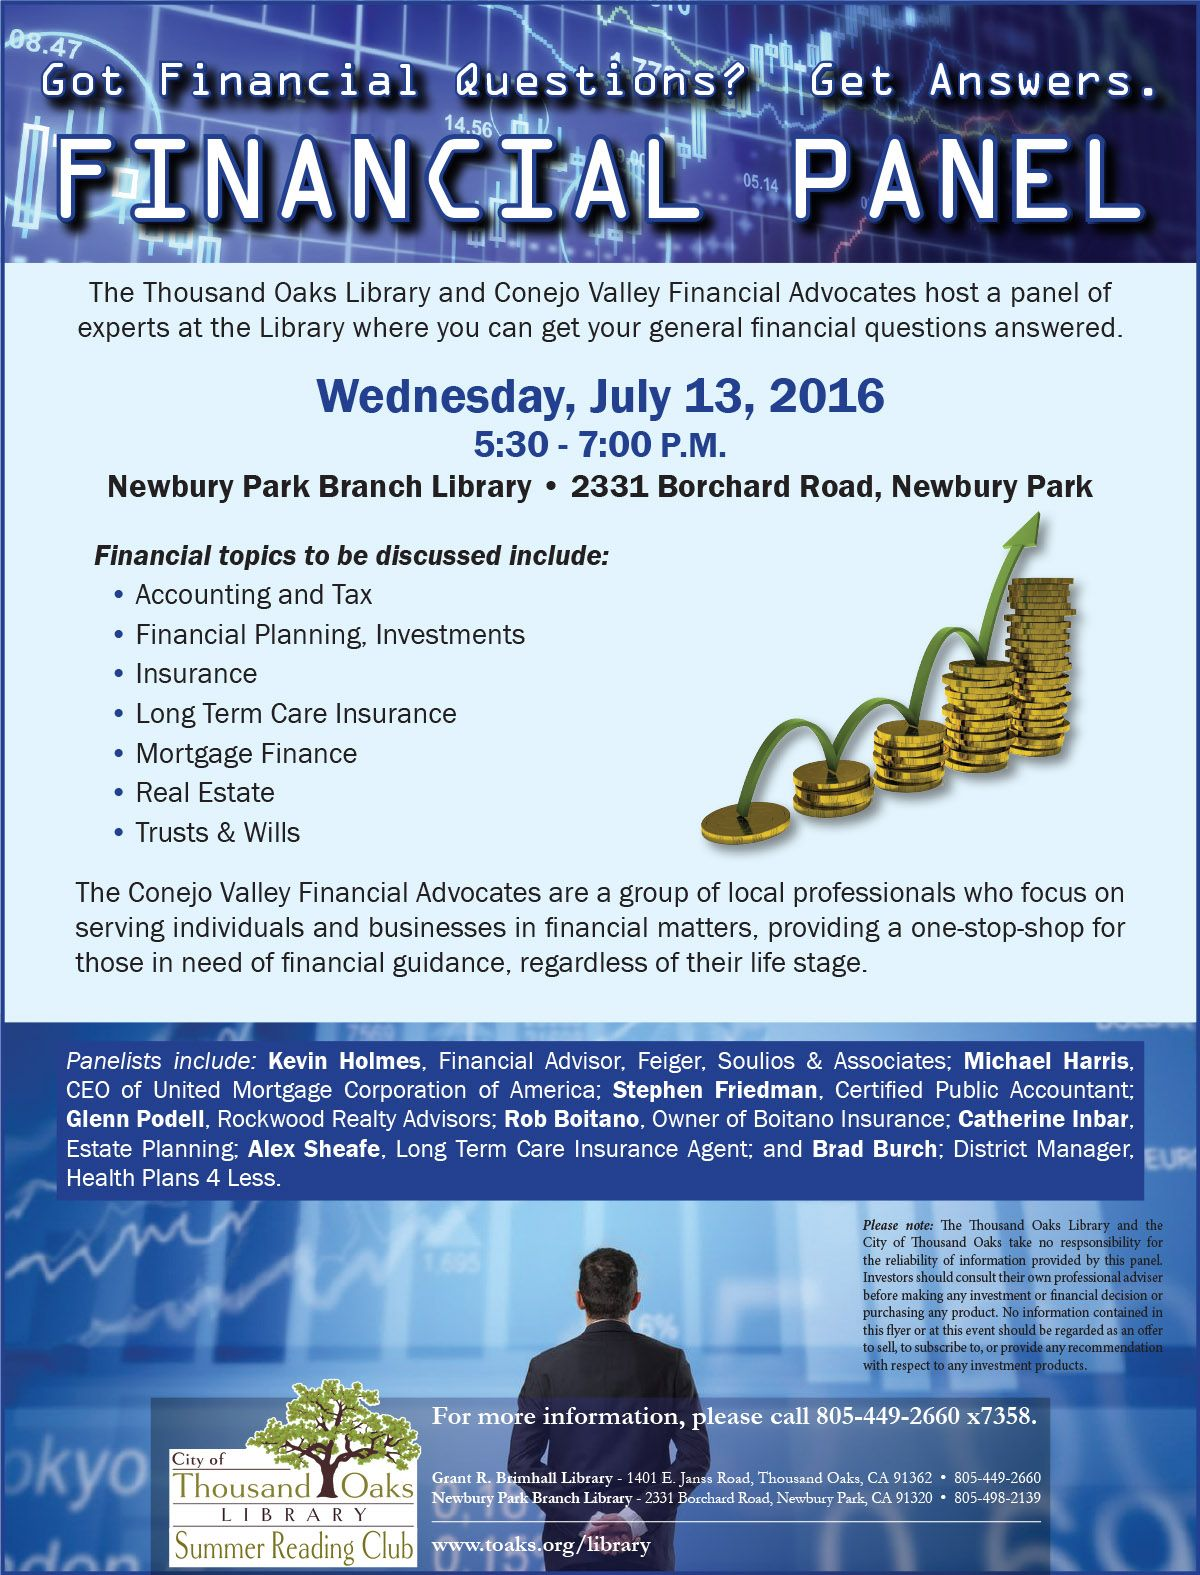 "The Thousand Oaks Library presents a ""Financial Panel"" on Wednesday, July 13, 2016 at 5:30pm at the Newbury Park Branch Library, 2331 Borchard Road, Newbury Park, CA.  This program is free and open to the public."